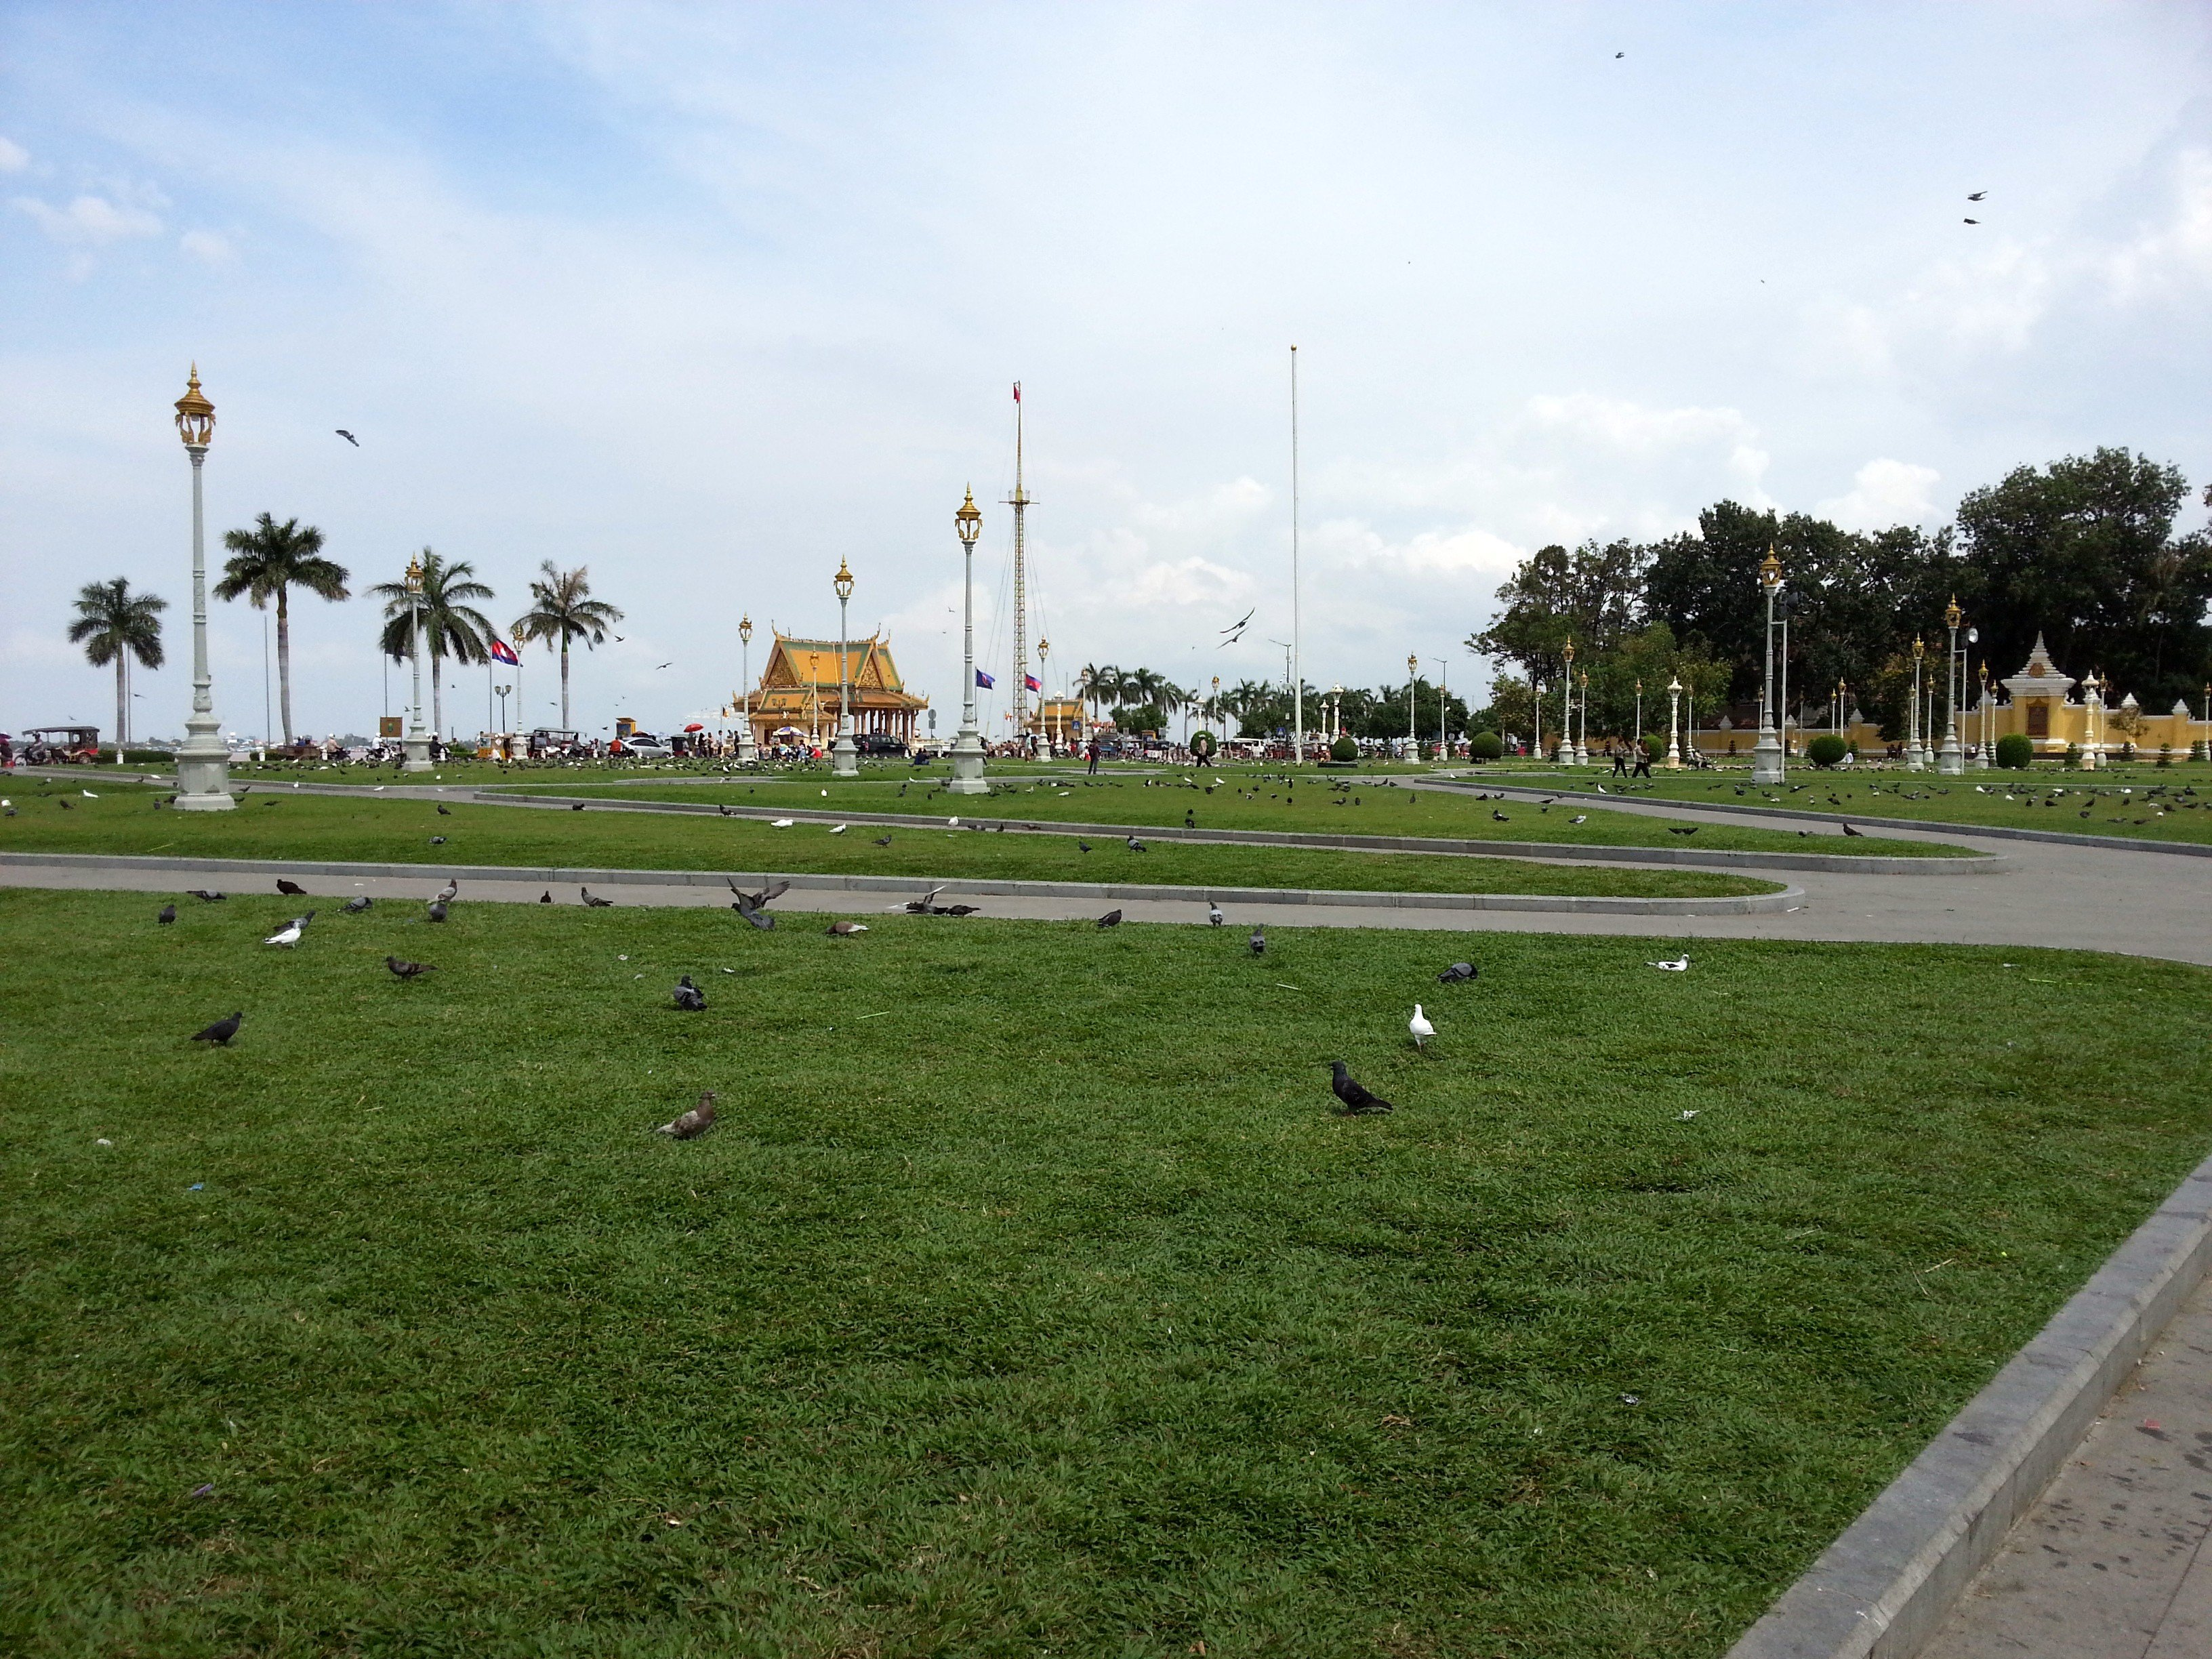 Royal Palace Park in Phnom Penh